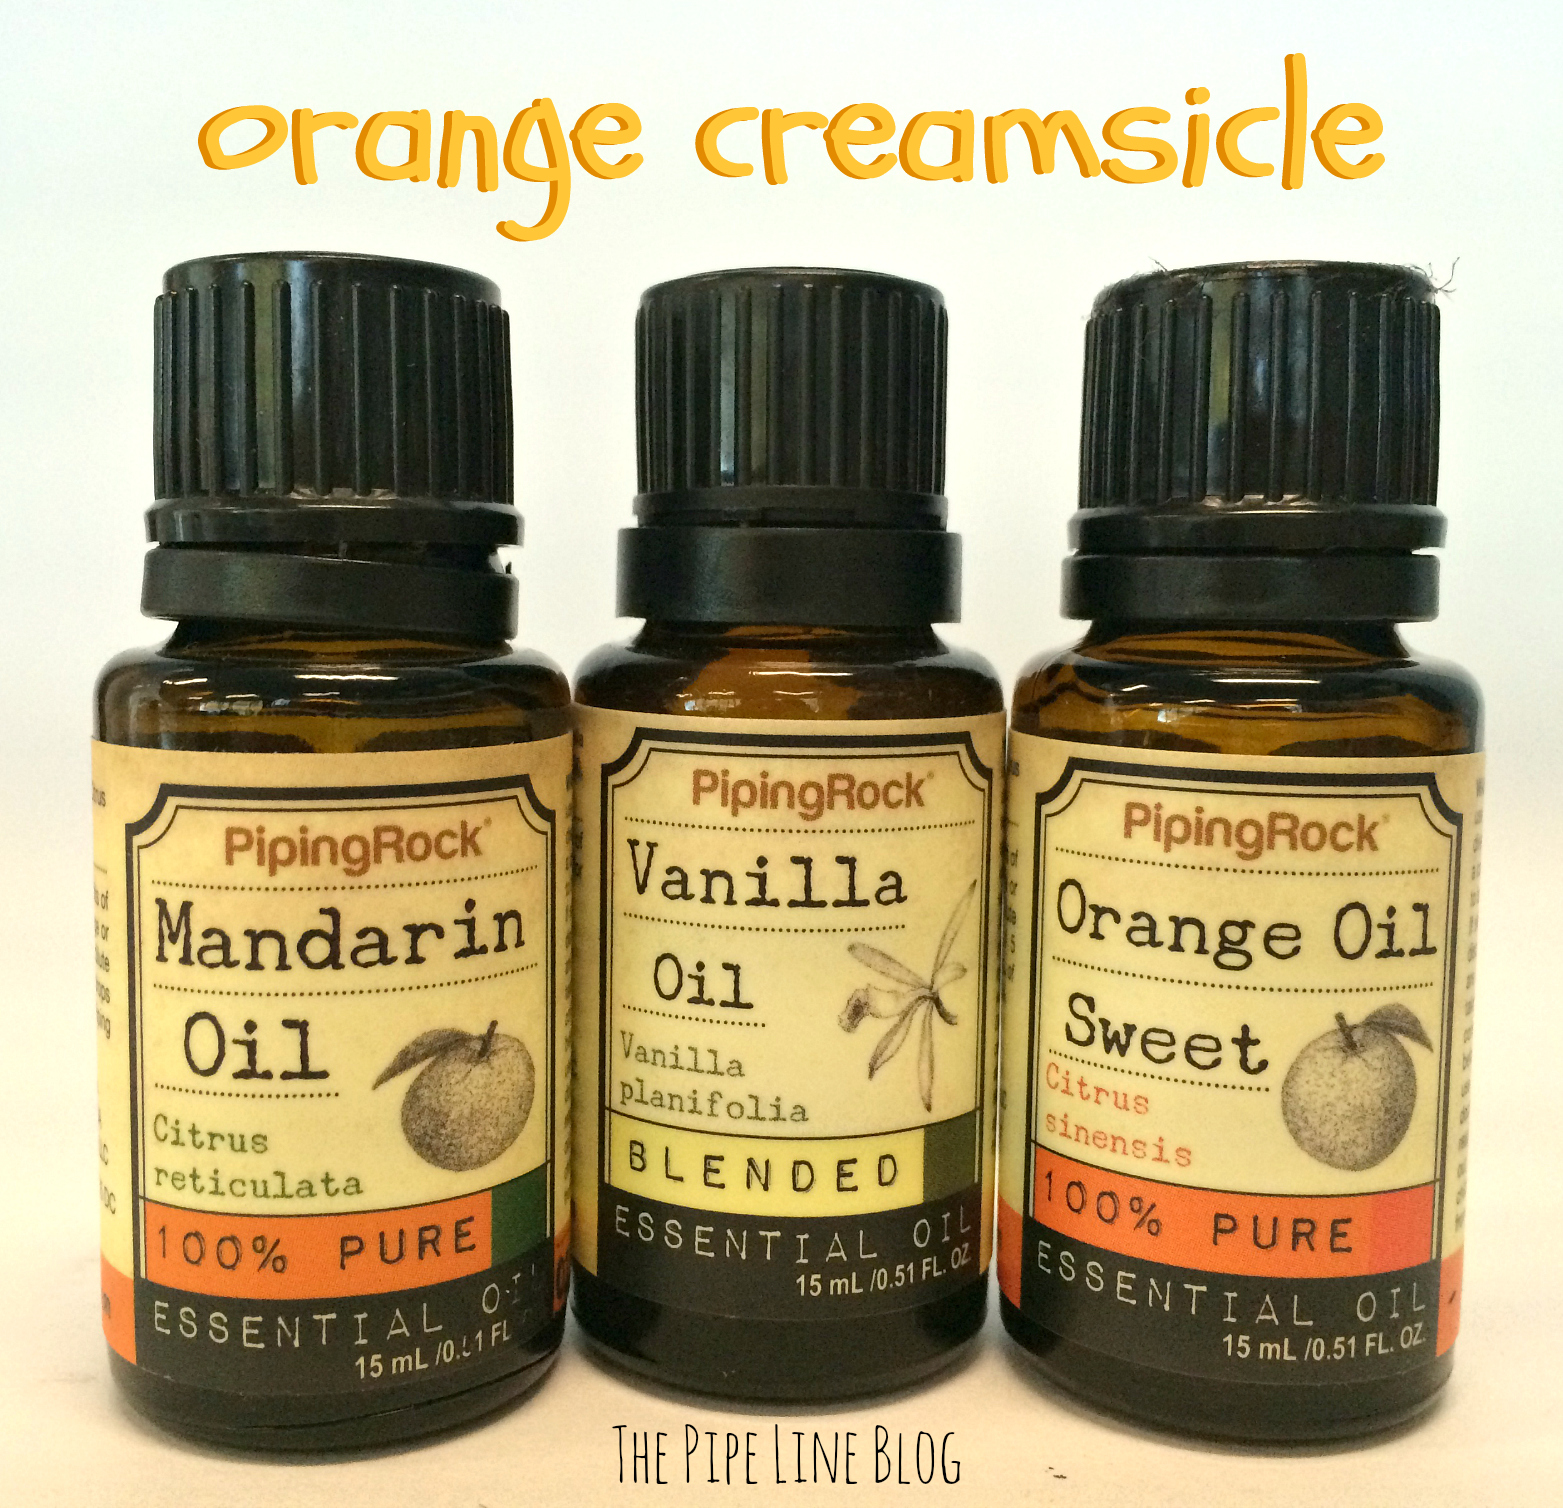 Piping Rock - The Pipe Line - Orange Creamsicle Aromatherapy Blend